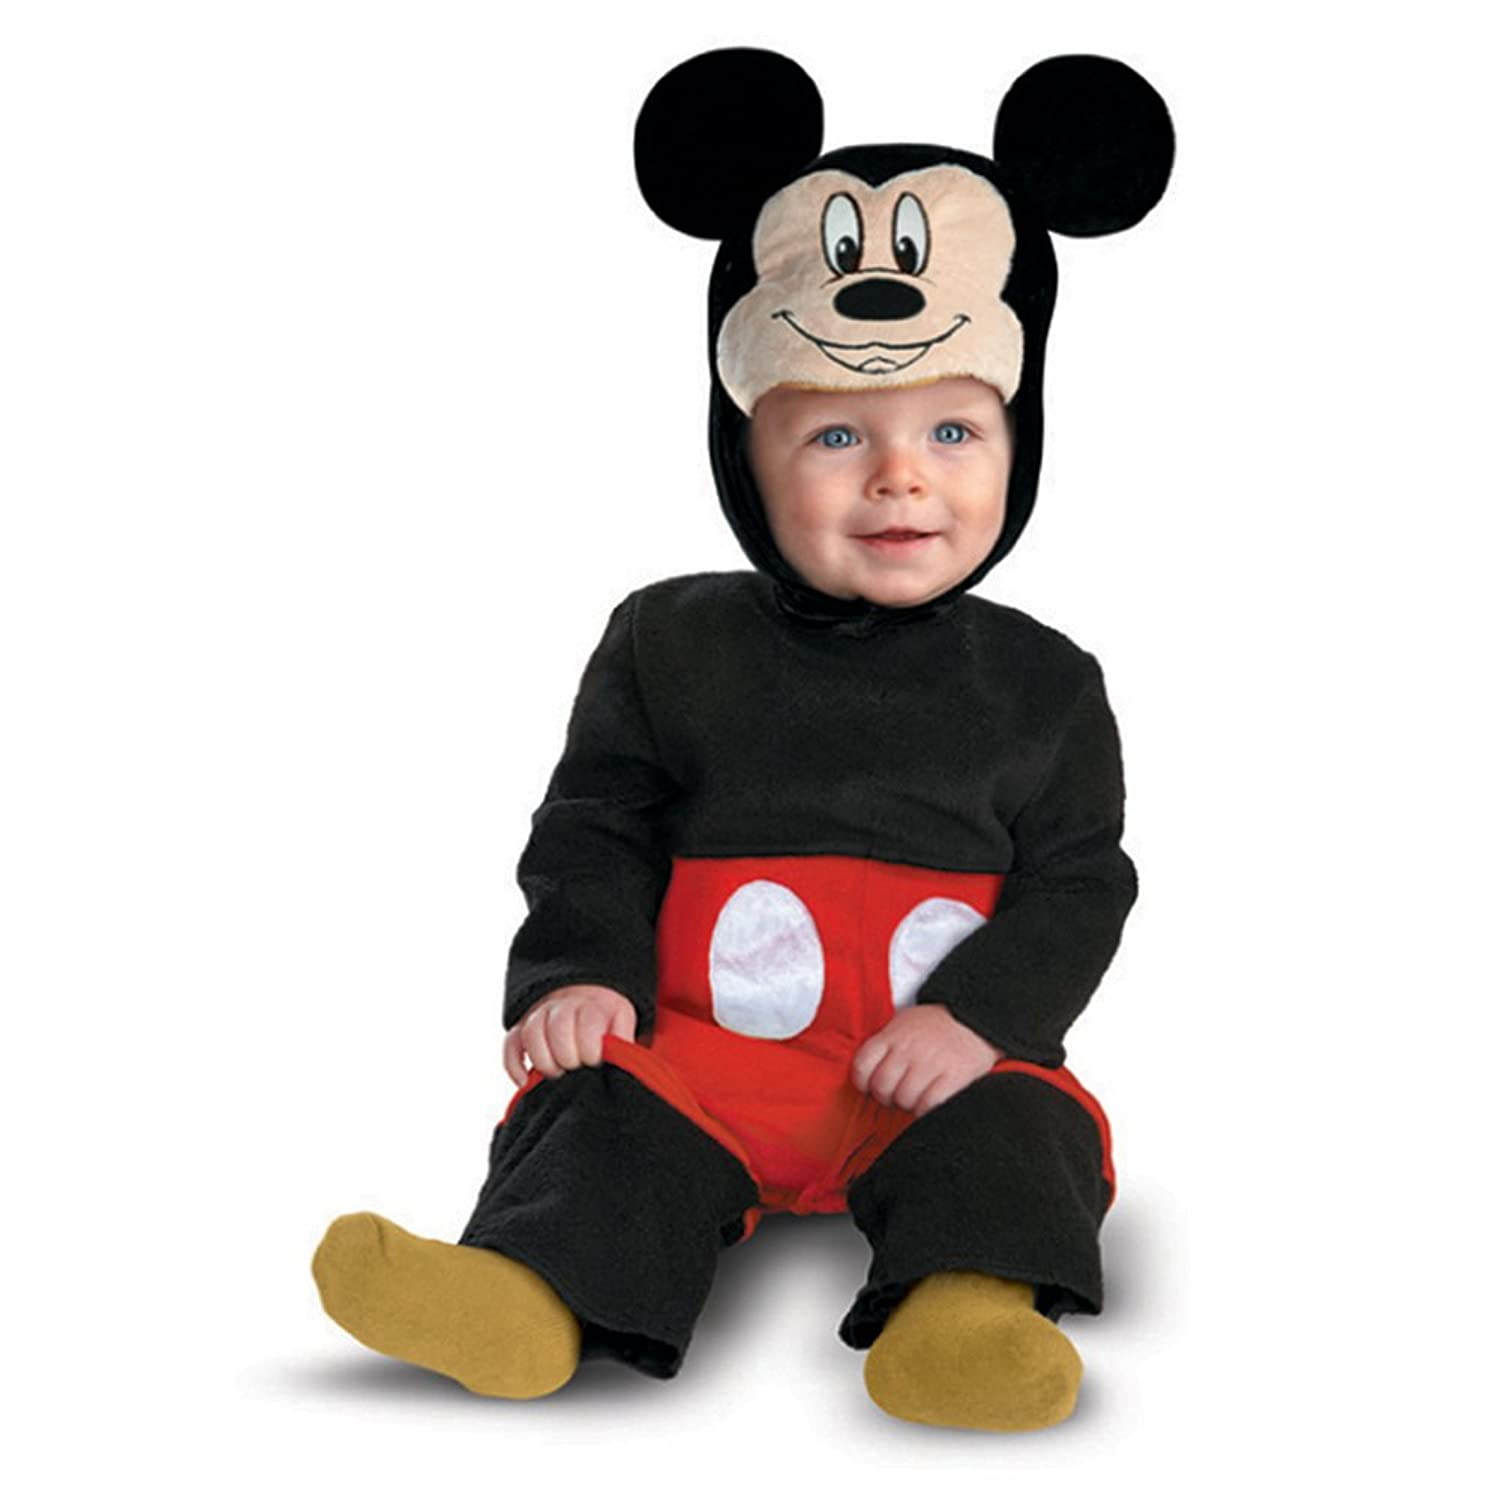 amazoncom disguise my first disney mickey costume blackredwhite 6 12 months clothing - Infant Mickey Mouse Halloween Costume